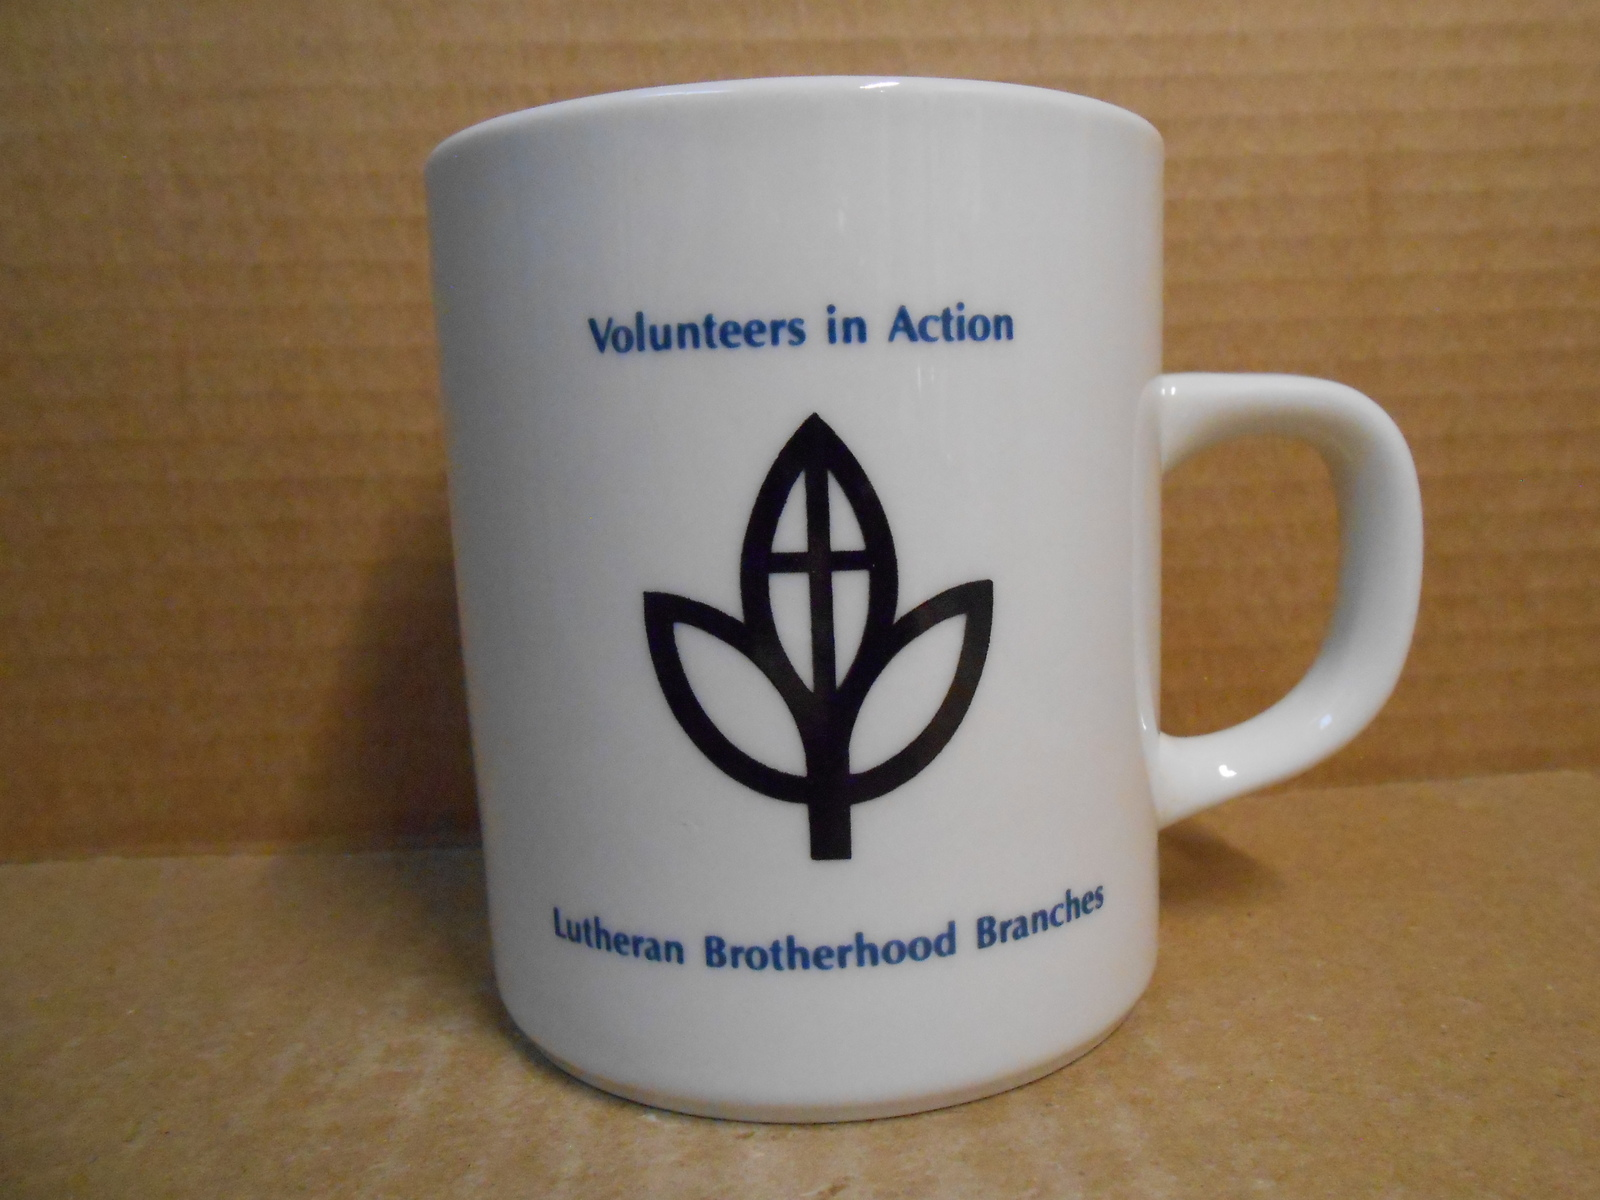 Primary image for VOLUNTEERS IN ACTION CERAMIC MUG LUTHERAN BROTHERHOOD BRANCHES NEW FREE SHIP JE1